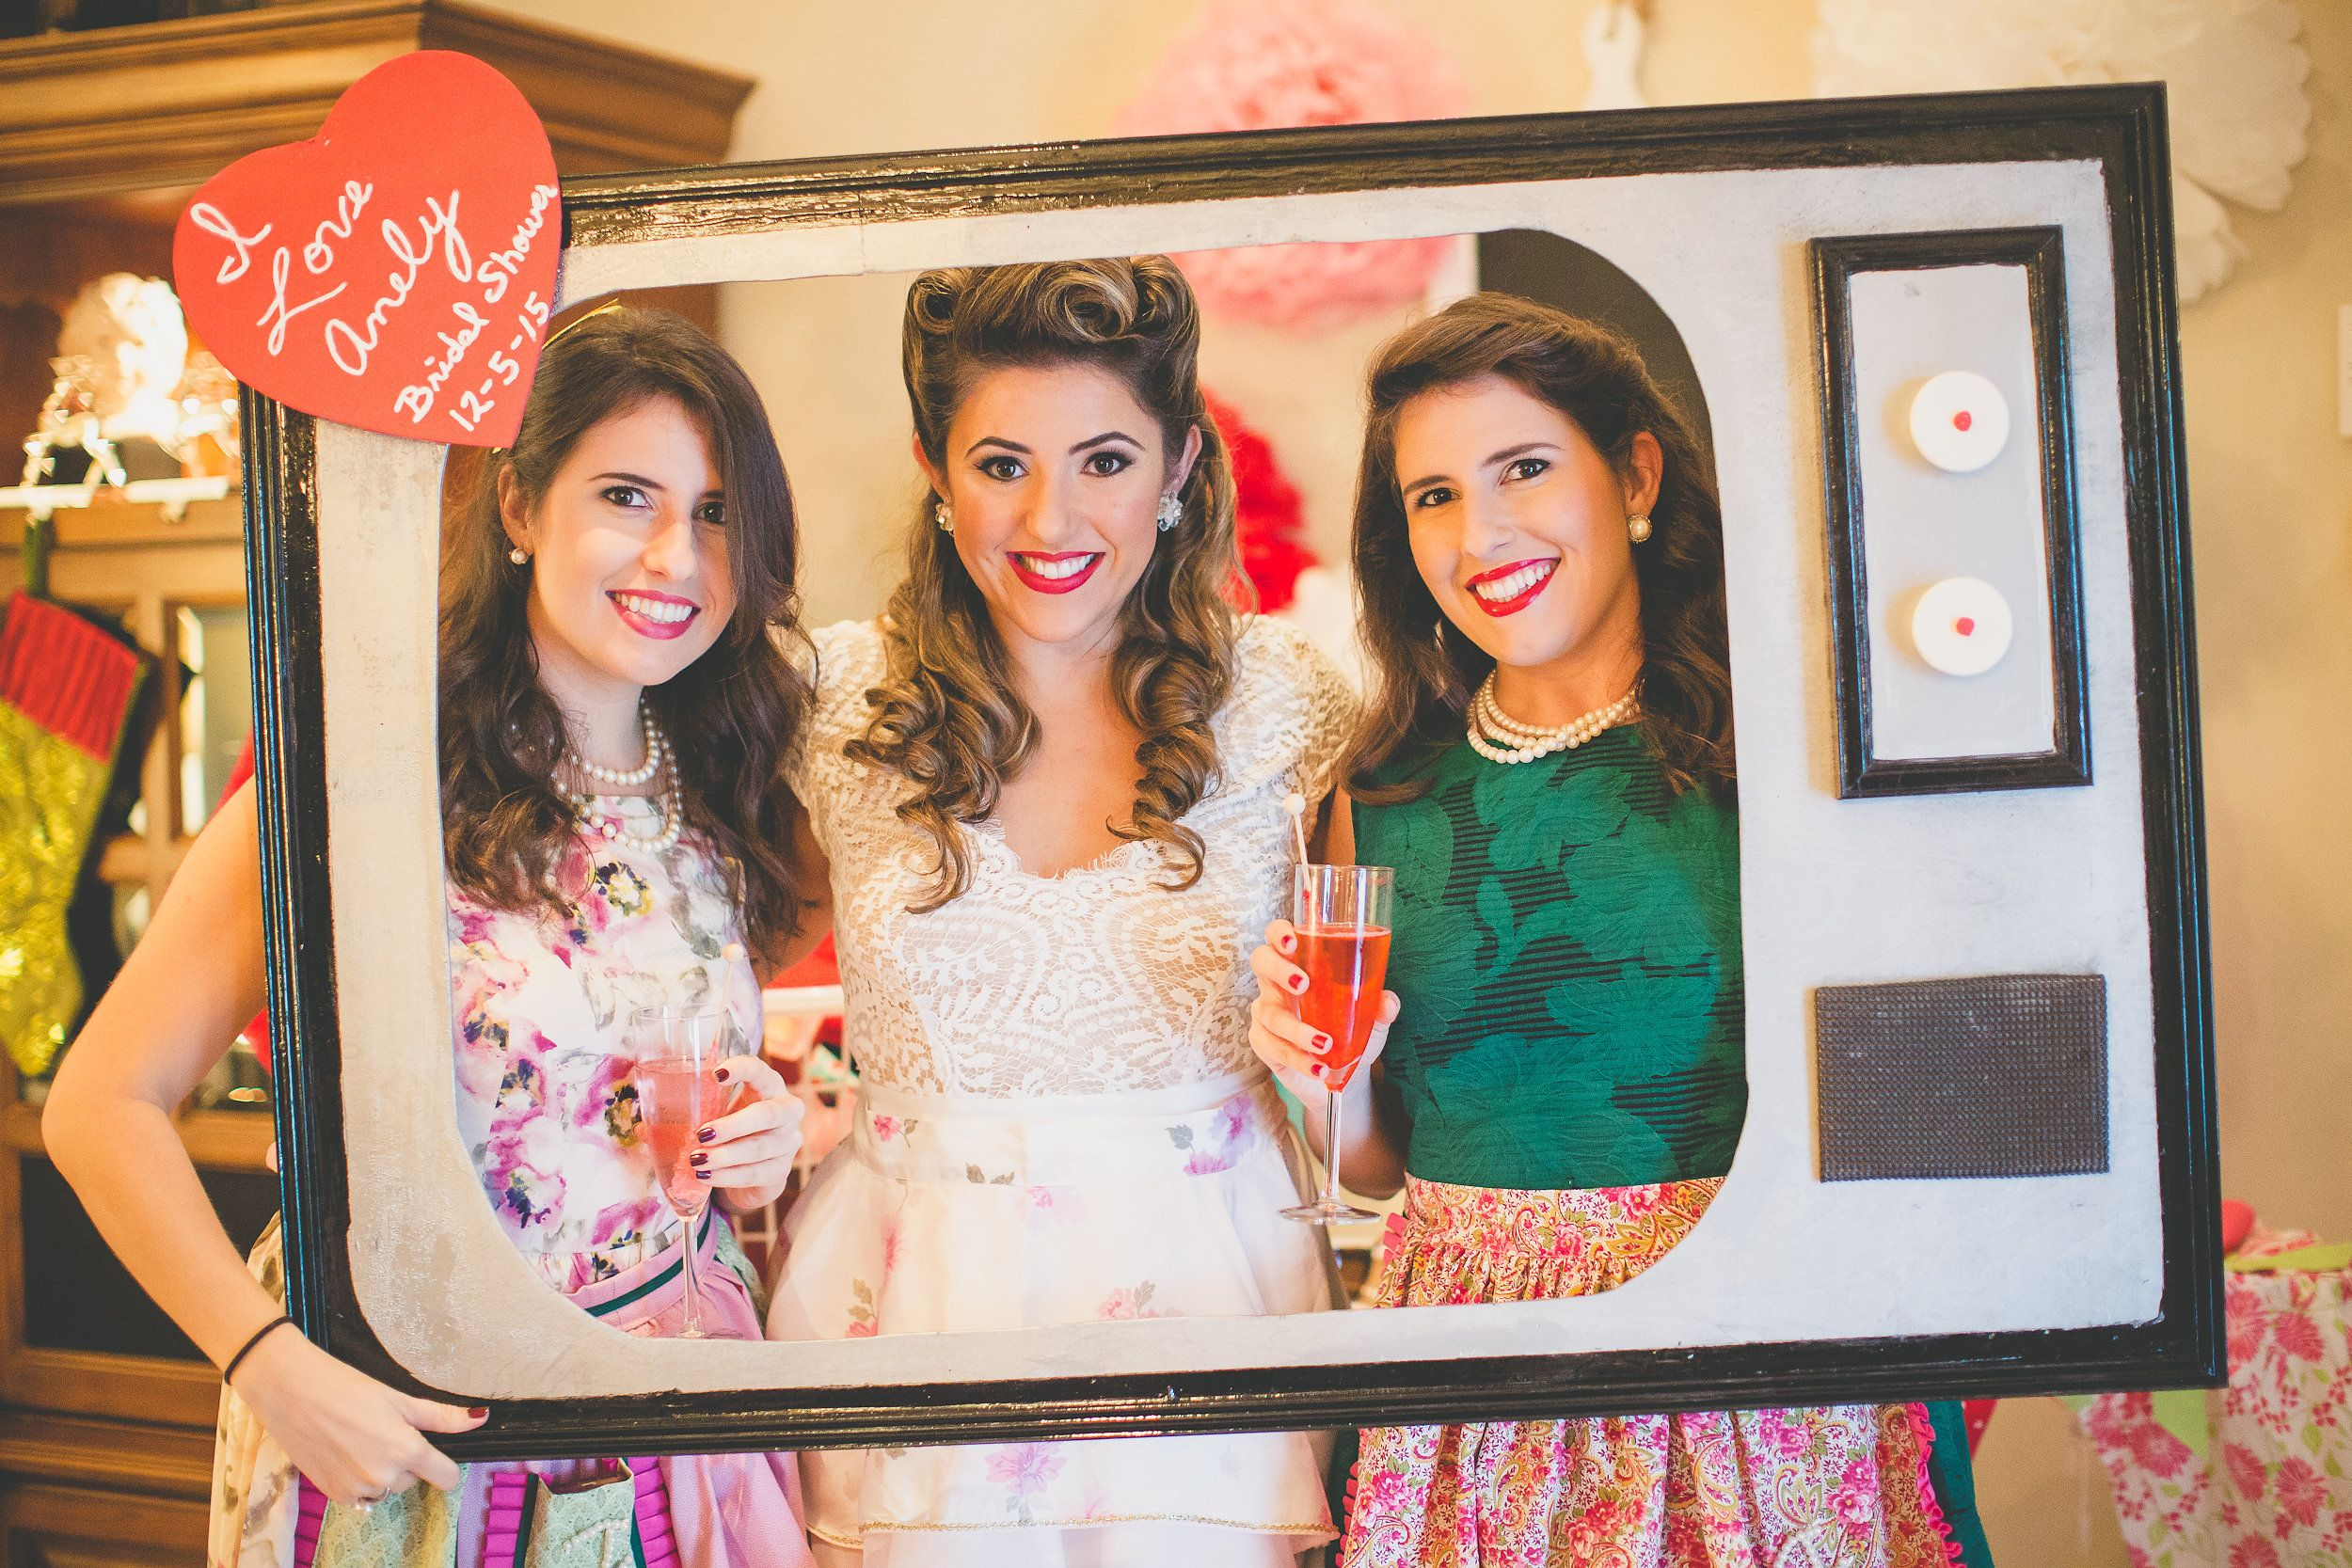 1d0b56d1f35e 50 s Housewife Retro Bridal Shower photobooth Photo cred   hcarmouze ...